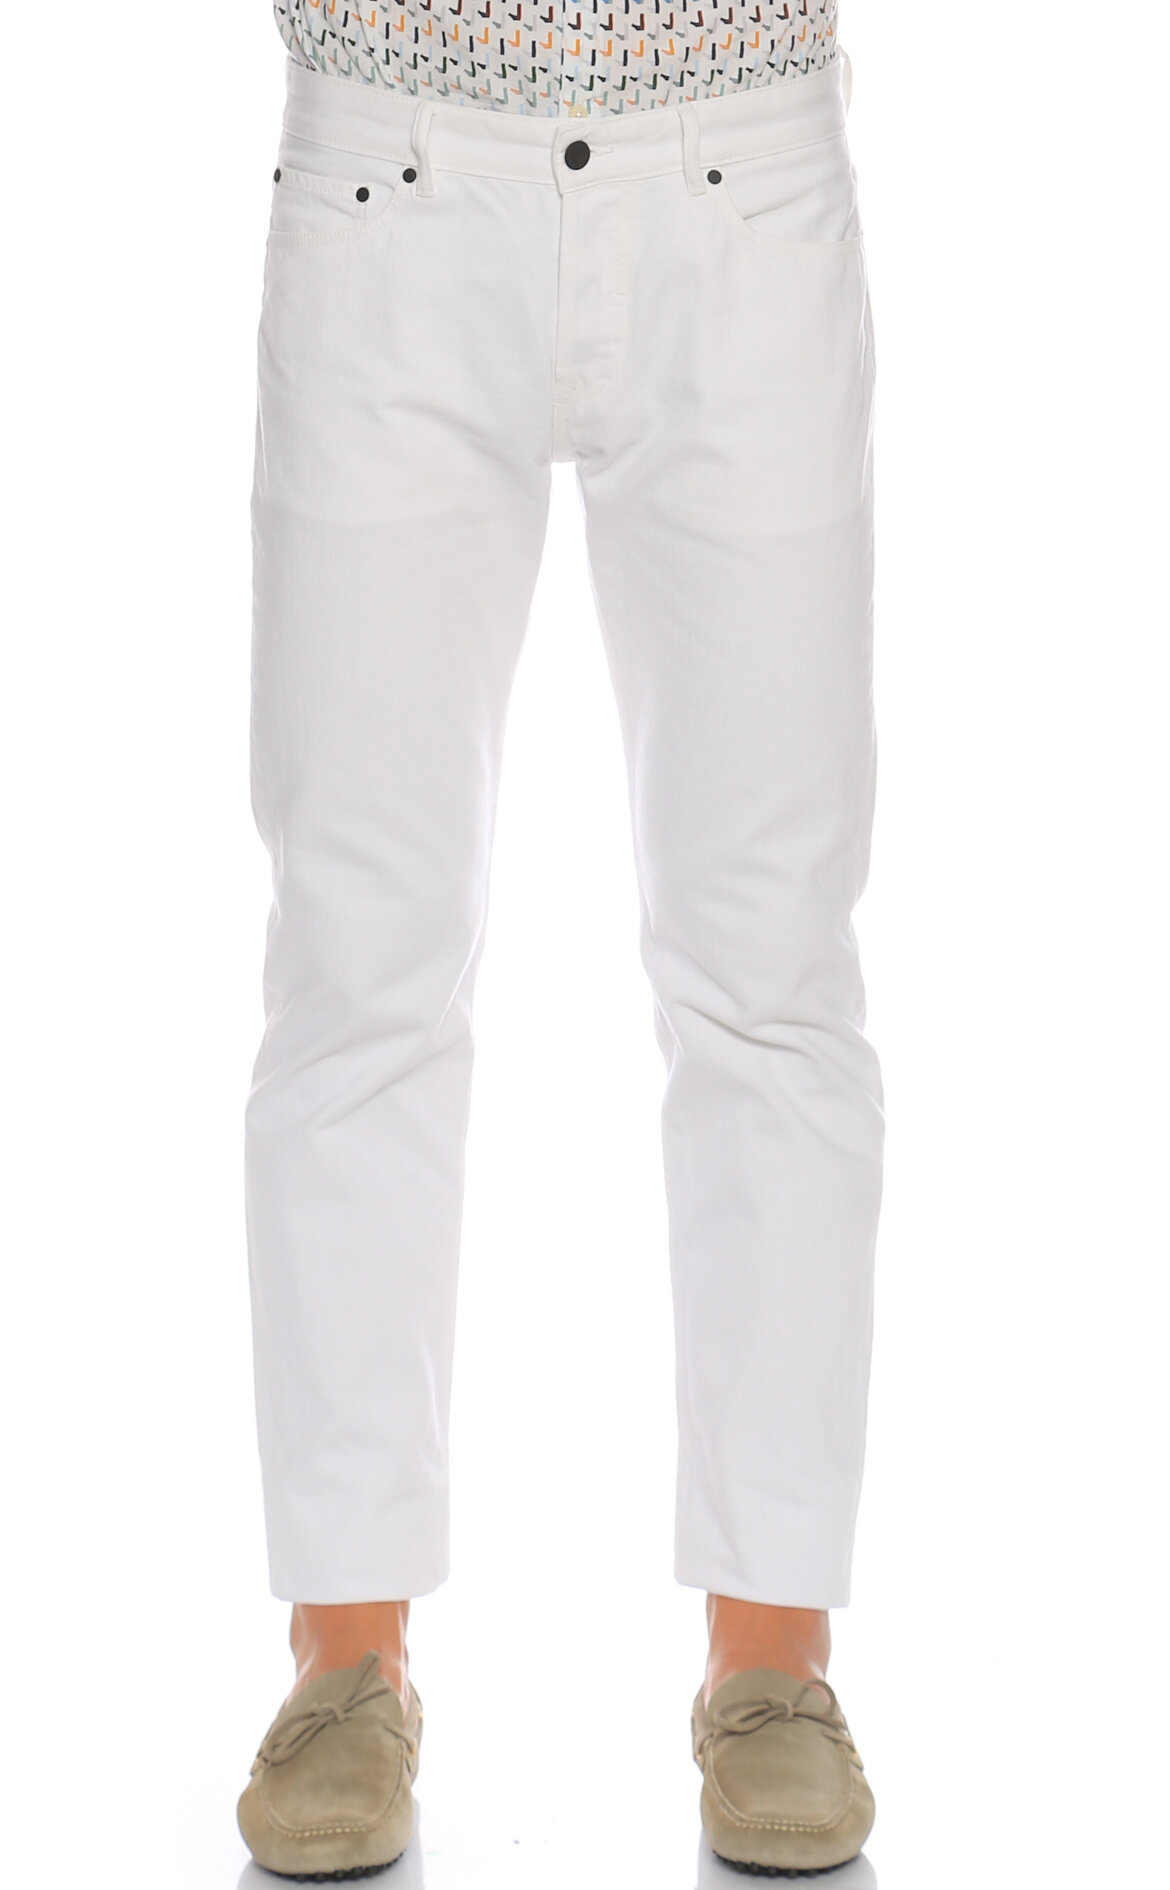 Essentiel Antwerp-Essentiel Antwerp Jean Pantolon